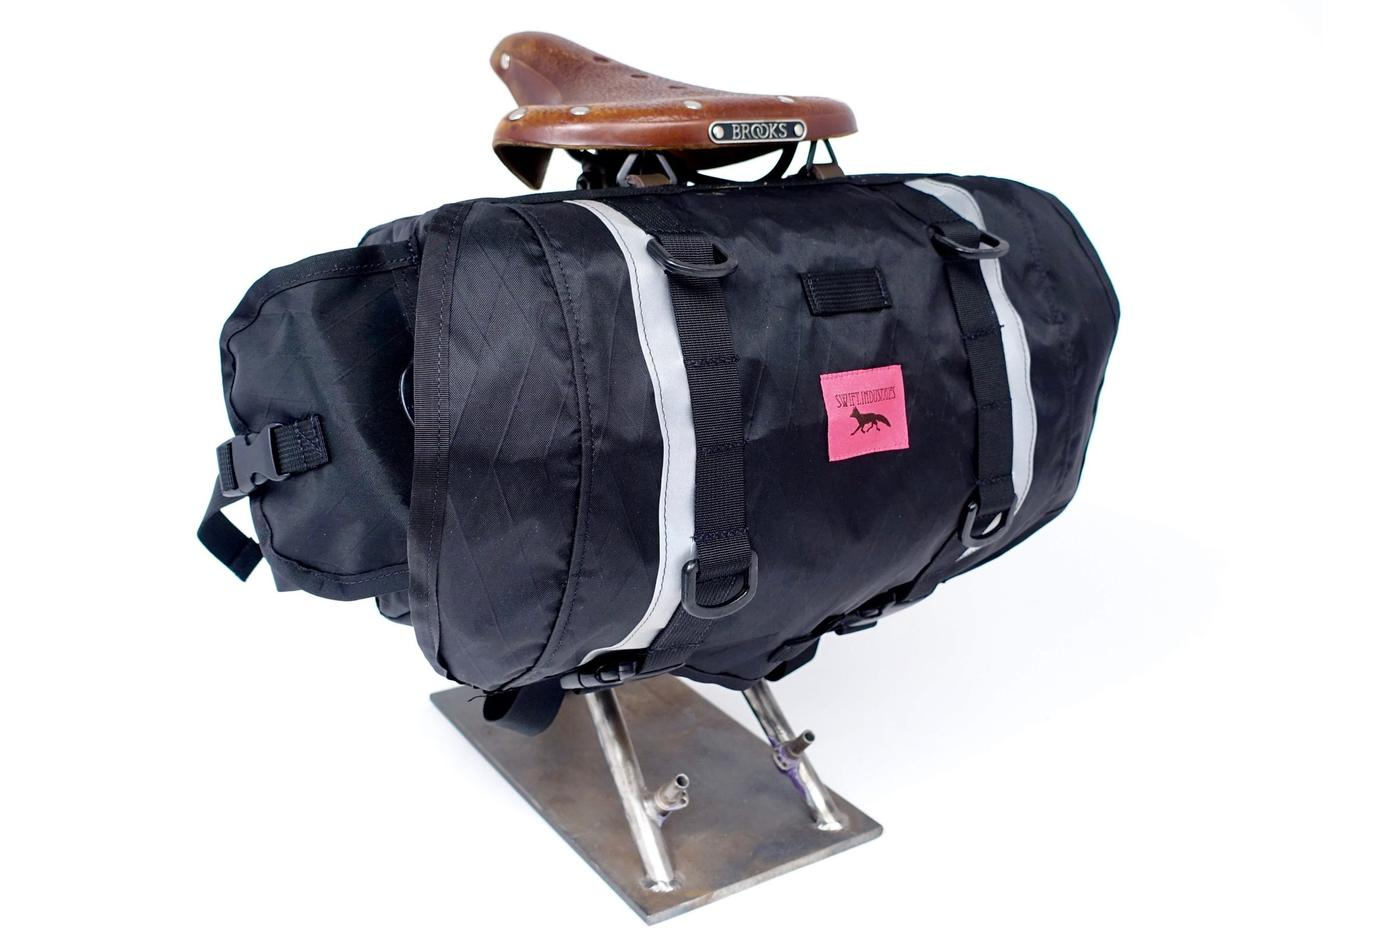 Swift Industries: New Lightweight XPAC Hinterland Zeitgeist Saddle Bag